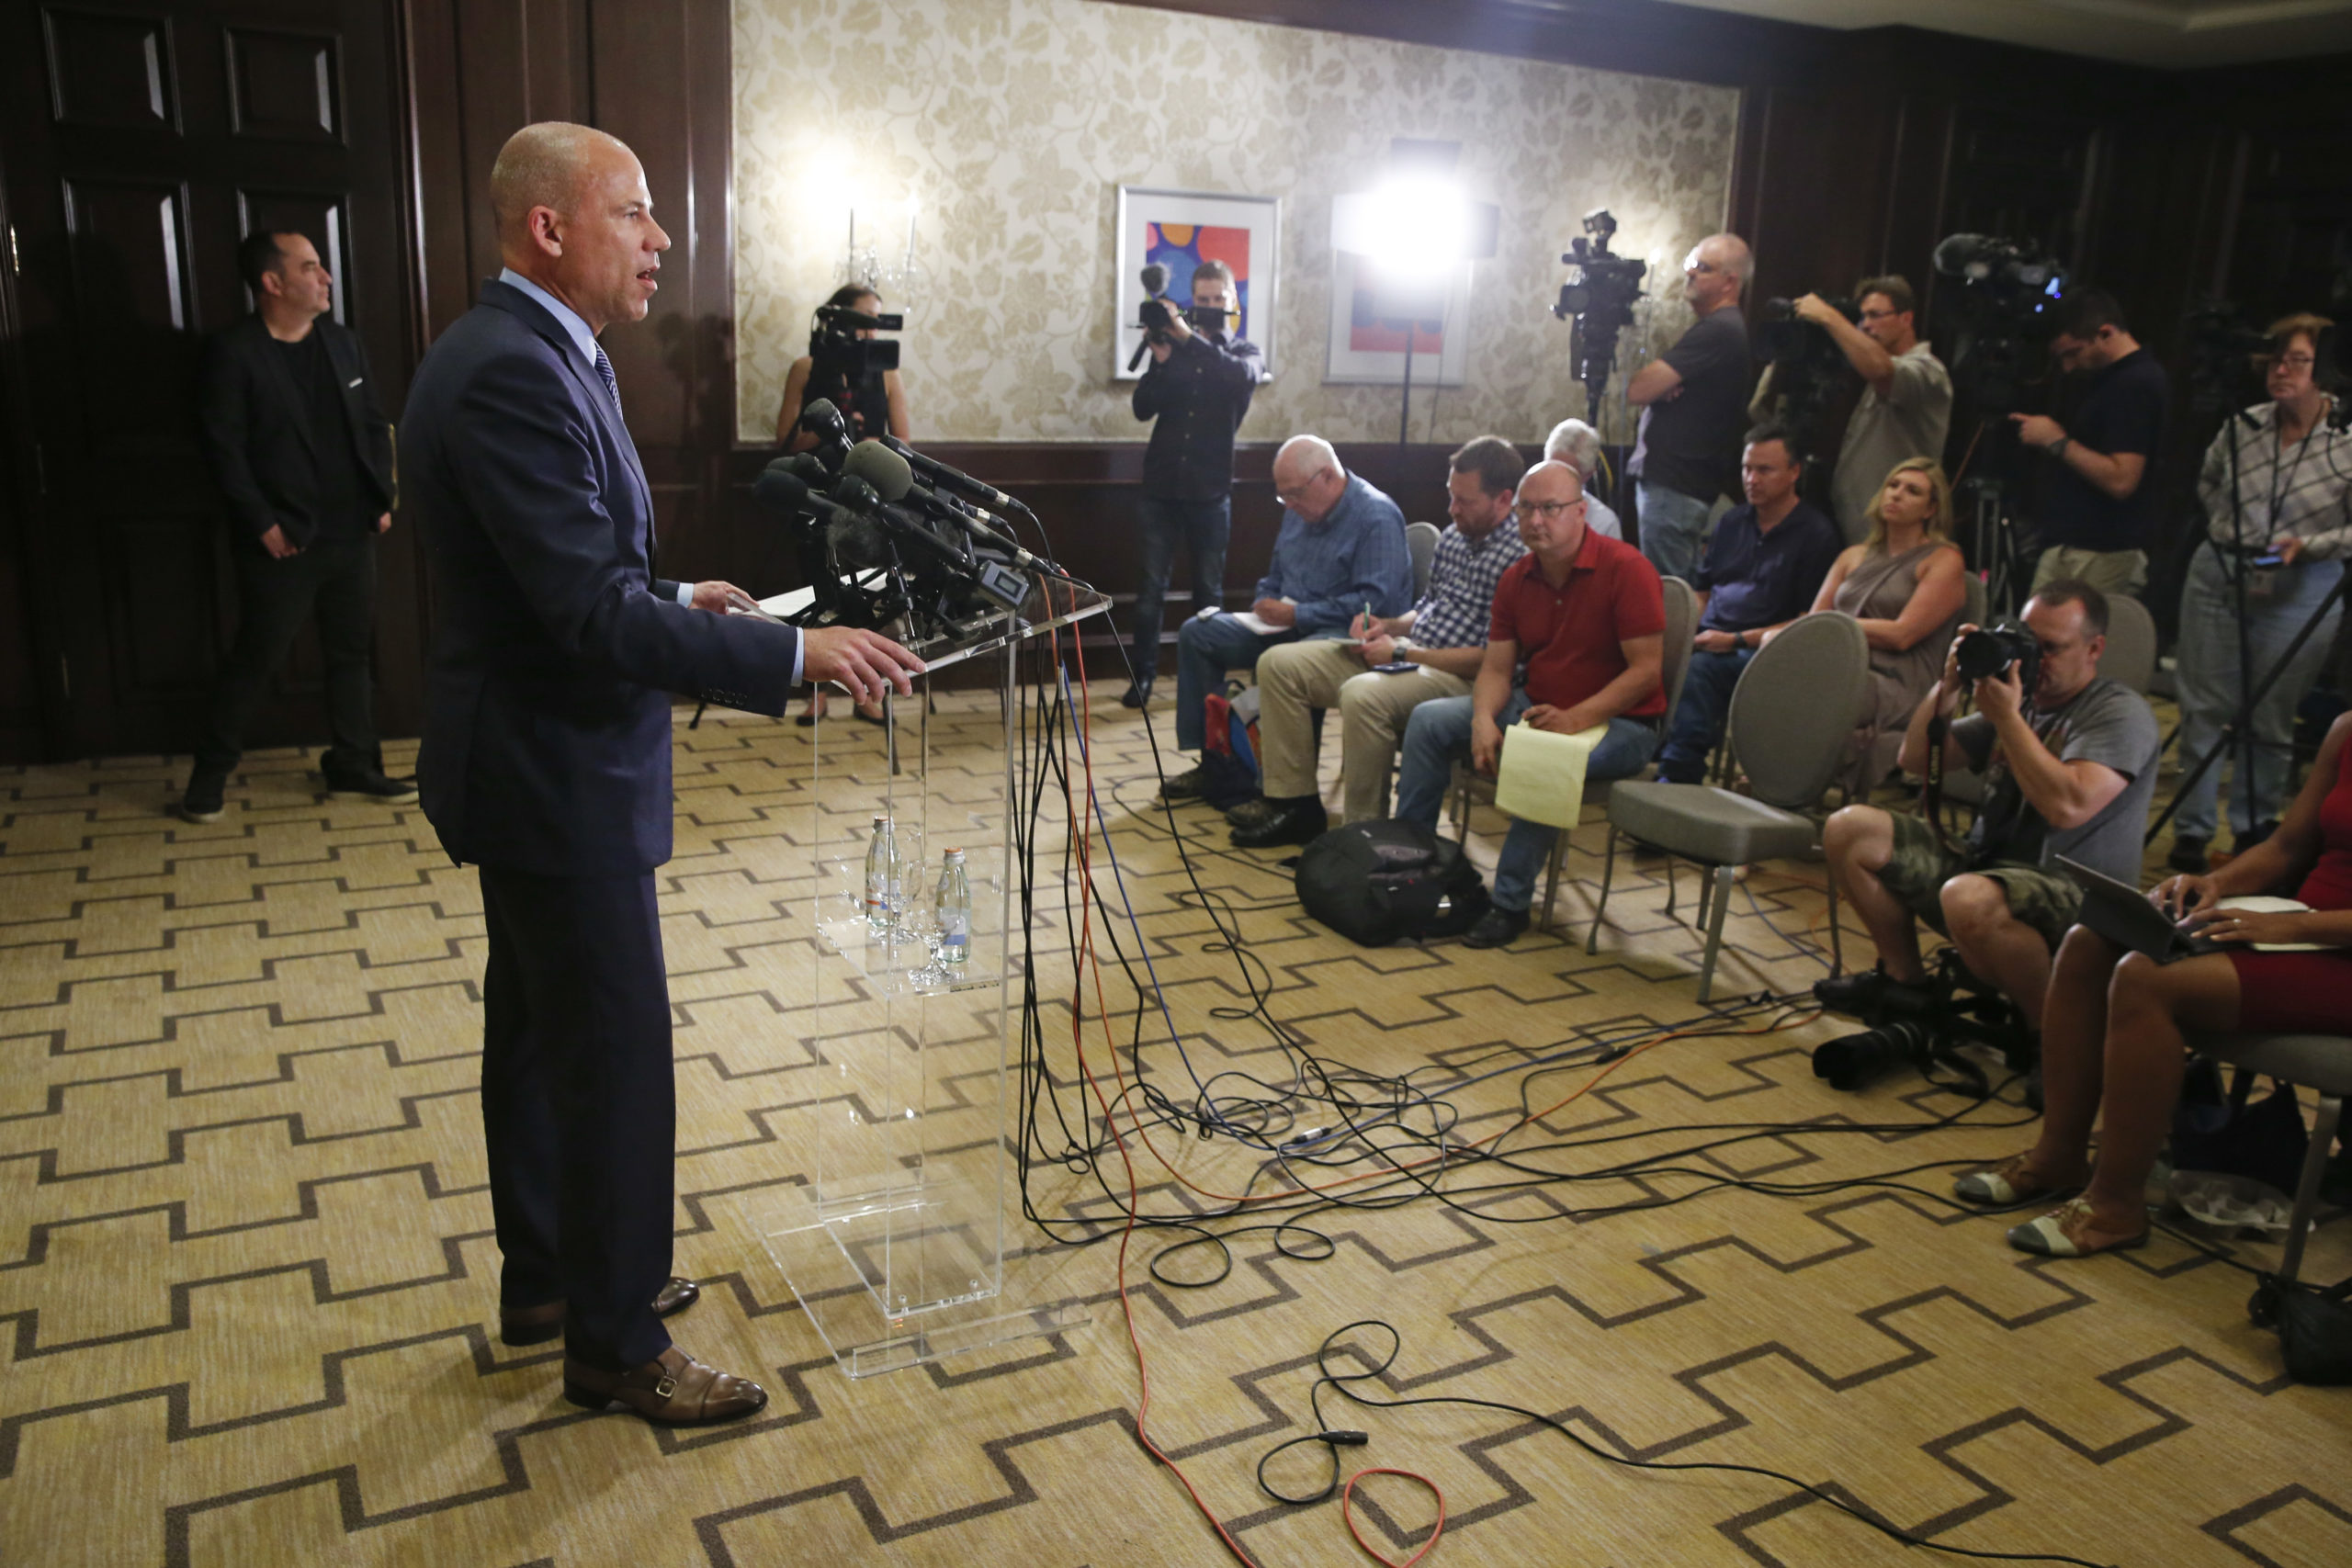 Attorney Michael Avenatti speaks during a news conference on July 15, 2019 in Chicago, Illinois. (Nuccio DiNuzzo/Getty Images)